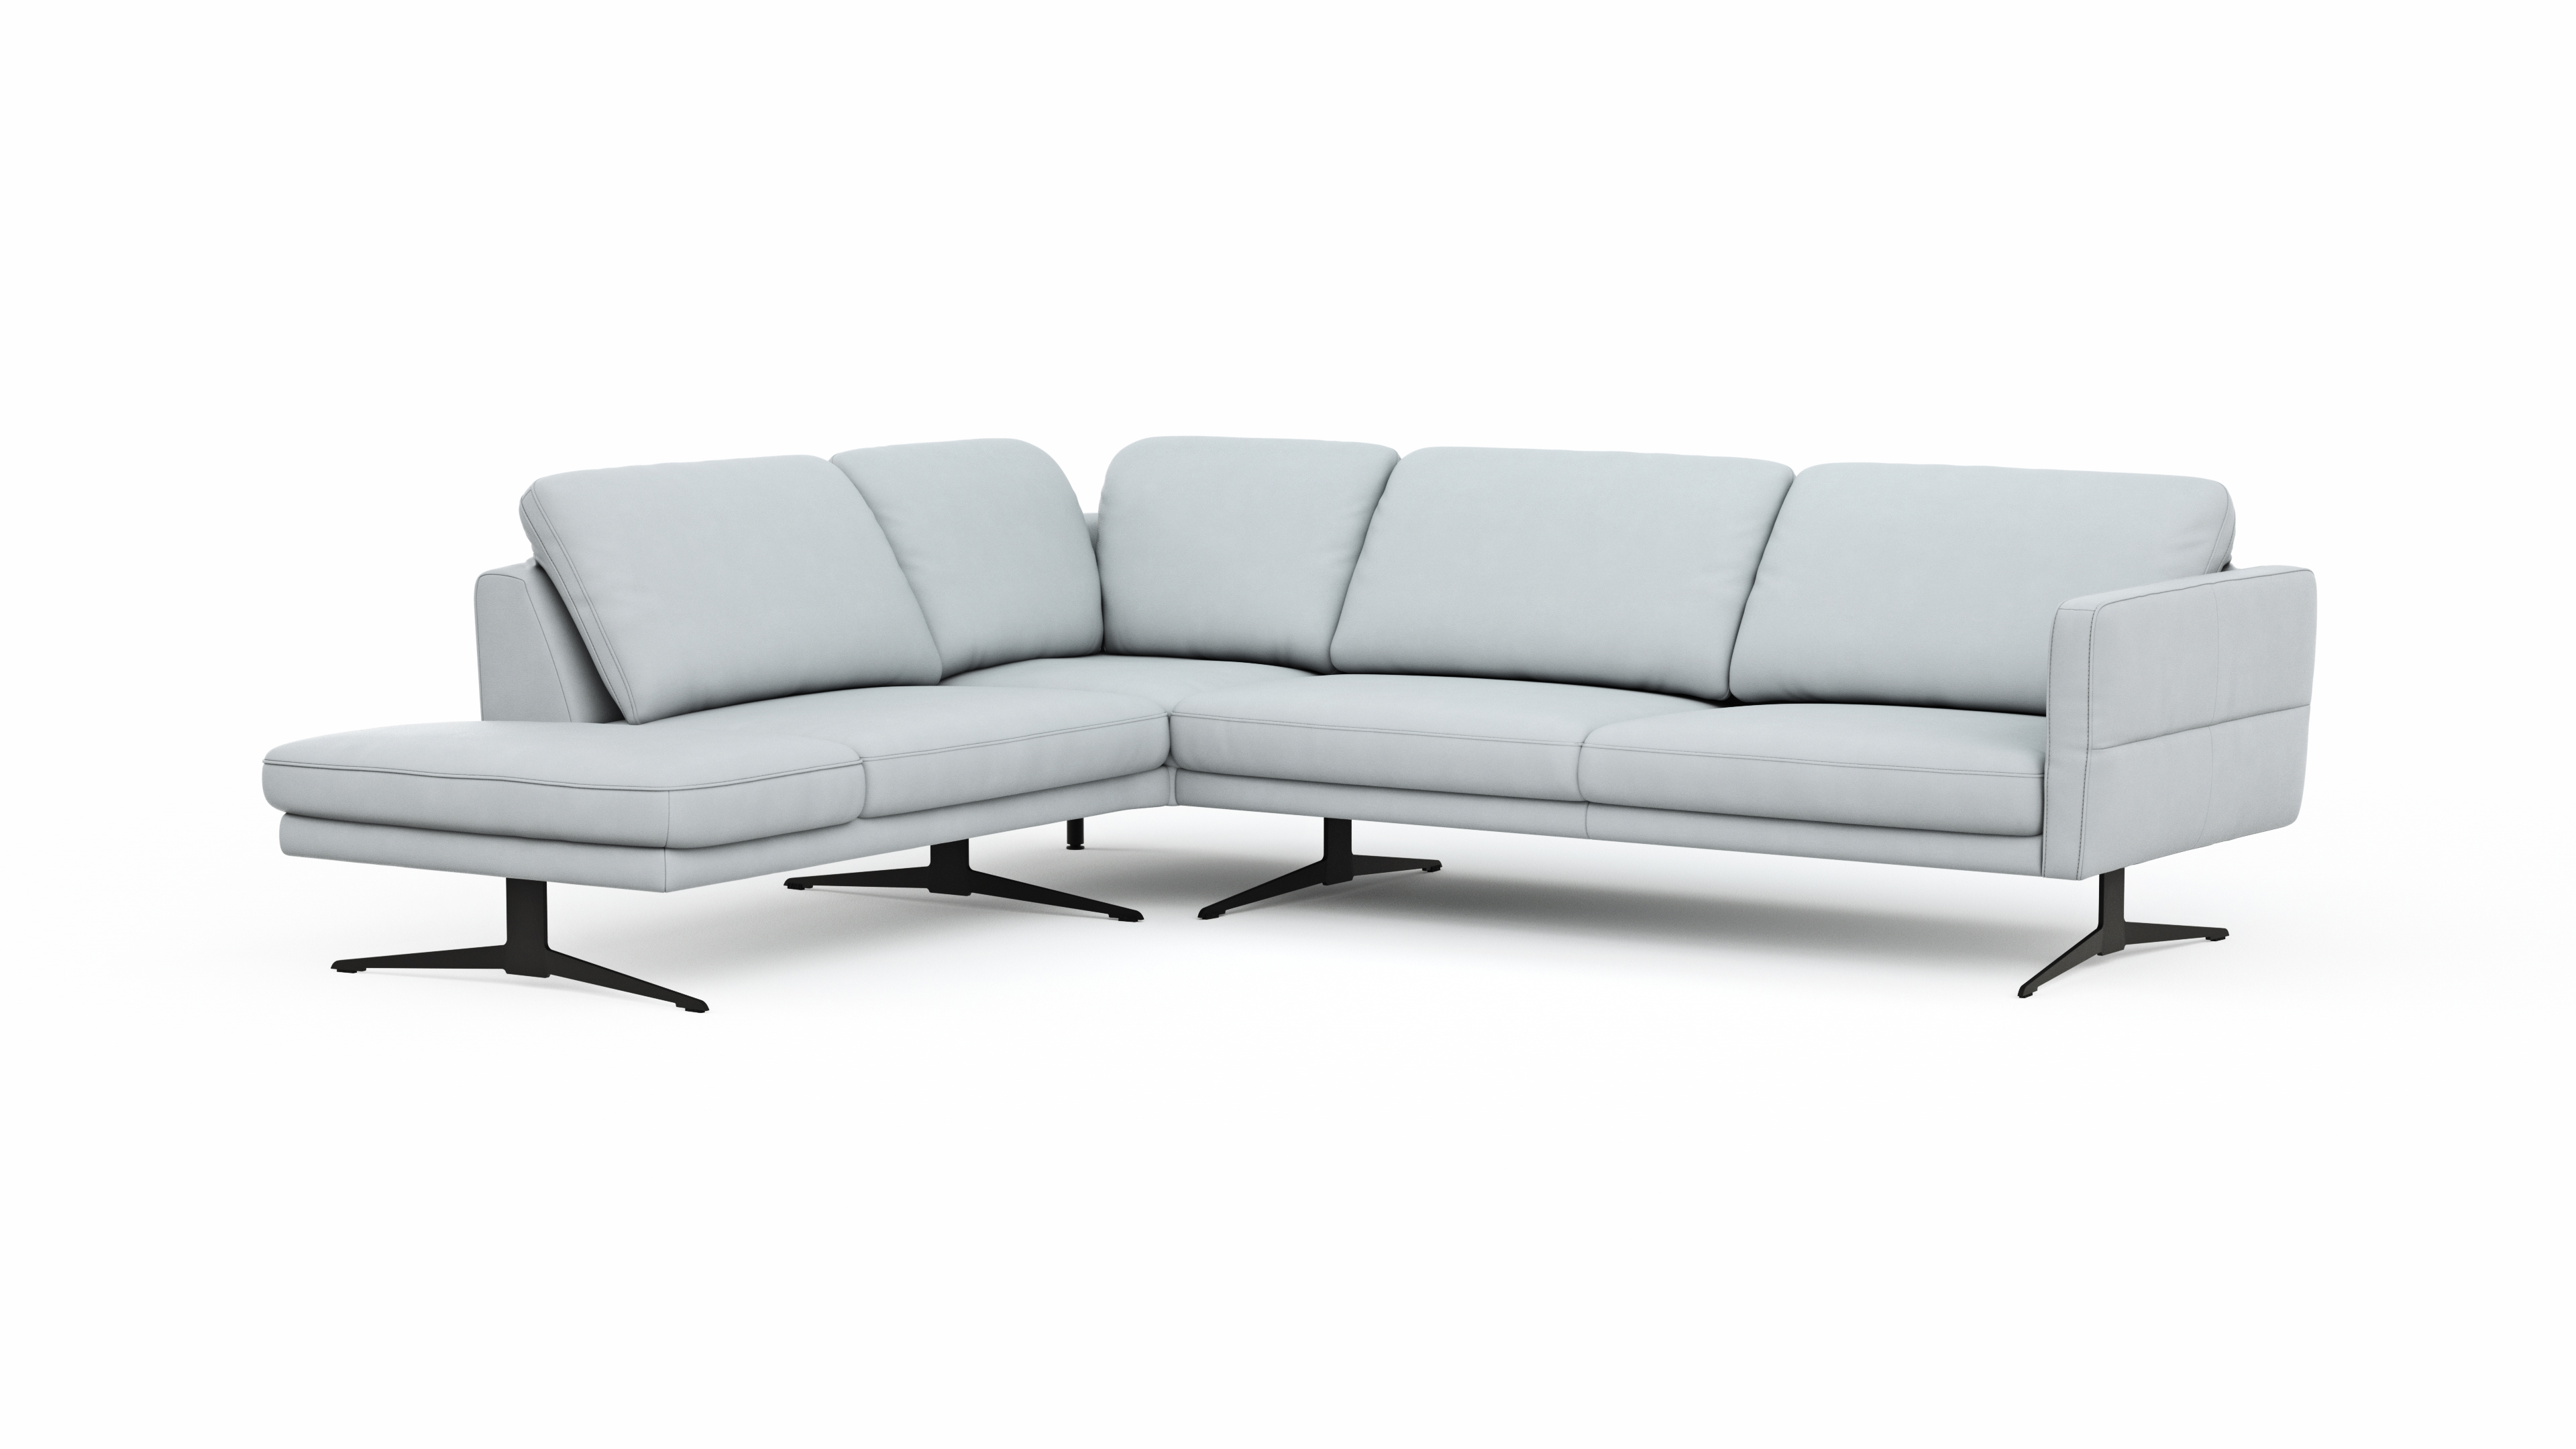 Global Select Ecksofa Estrela freisteller 2 104190 | Homepoet